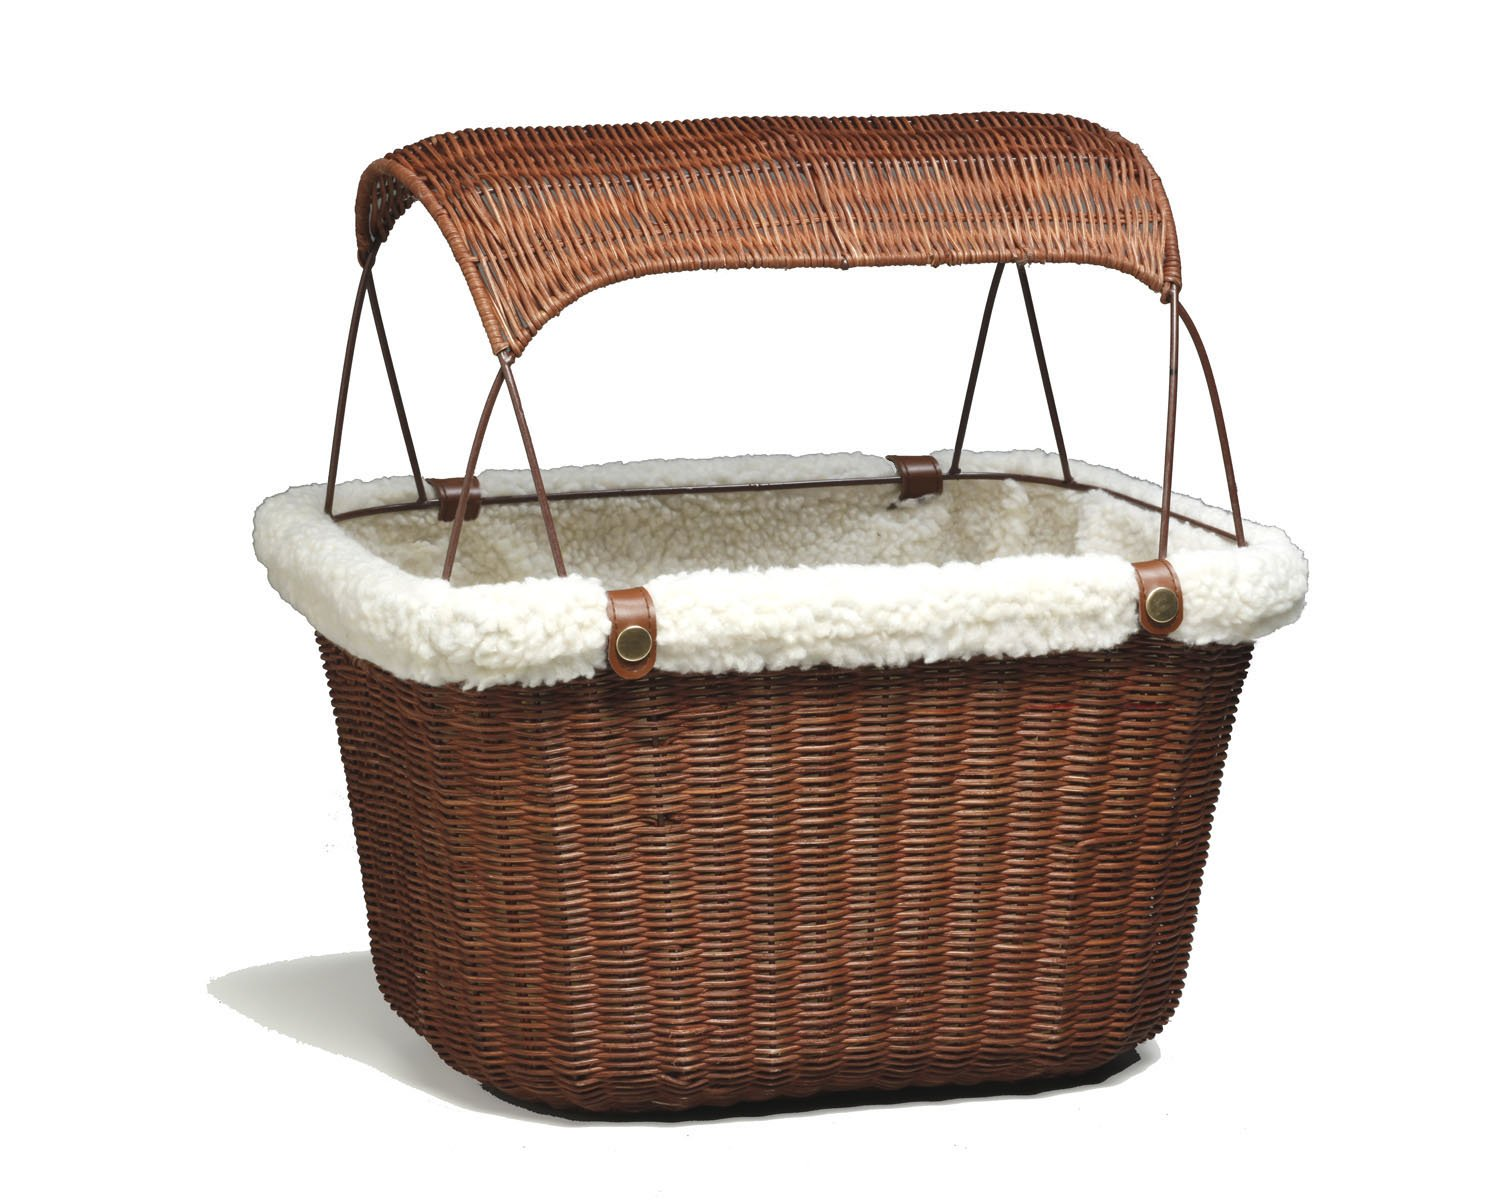 PetSafe Solvit Tagalong Bicycle Basket, Dog Carrier for Bikes, Best for Dogs Up to 13 lb. 62331